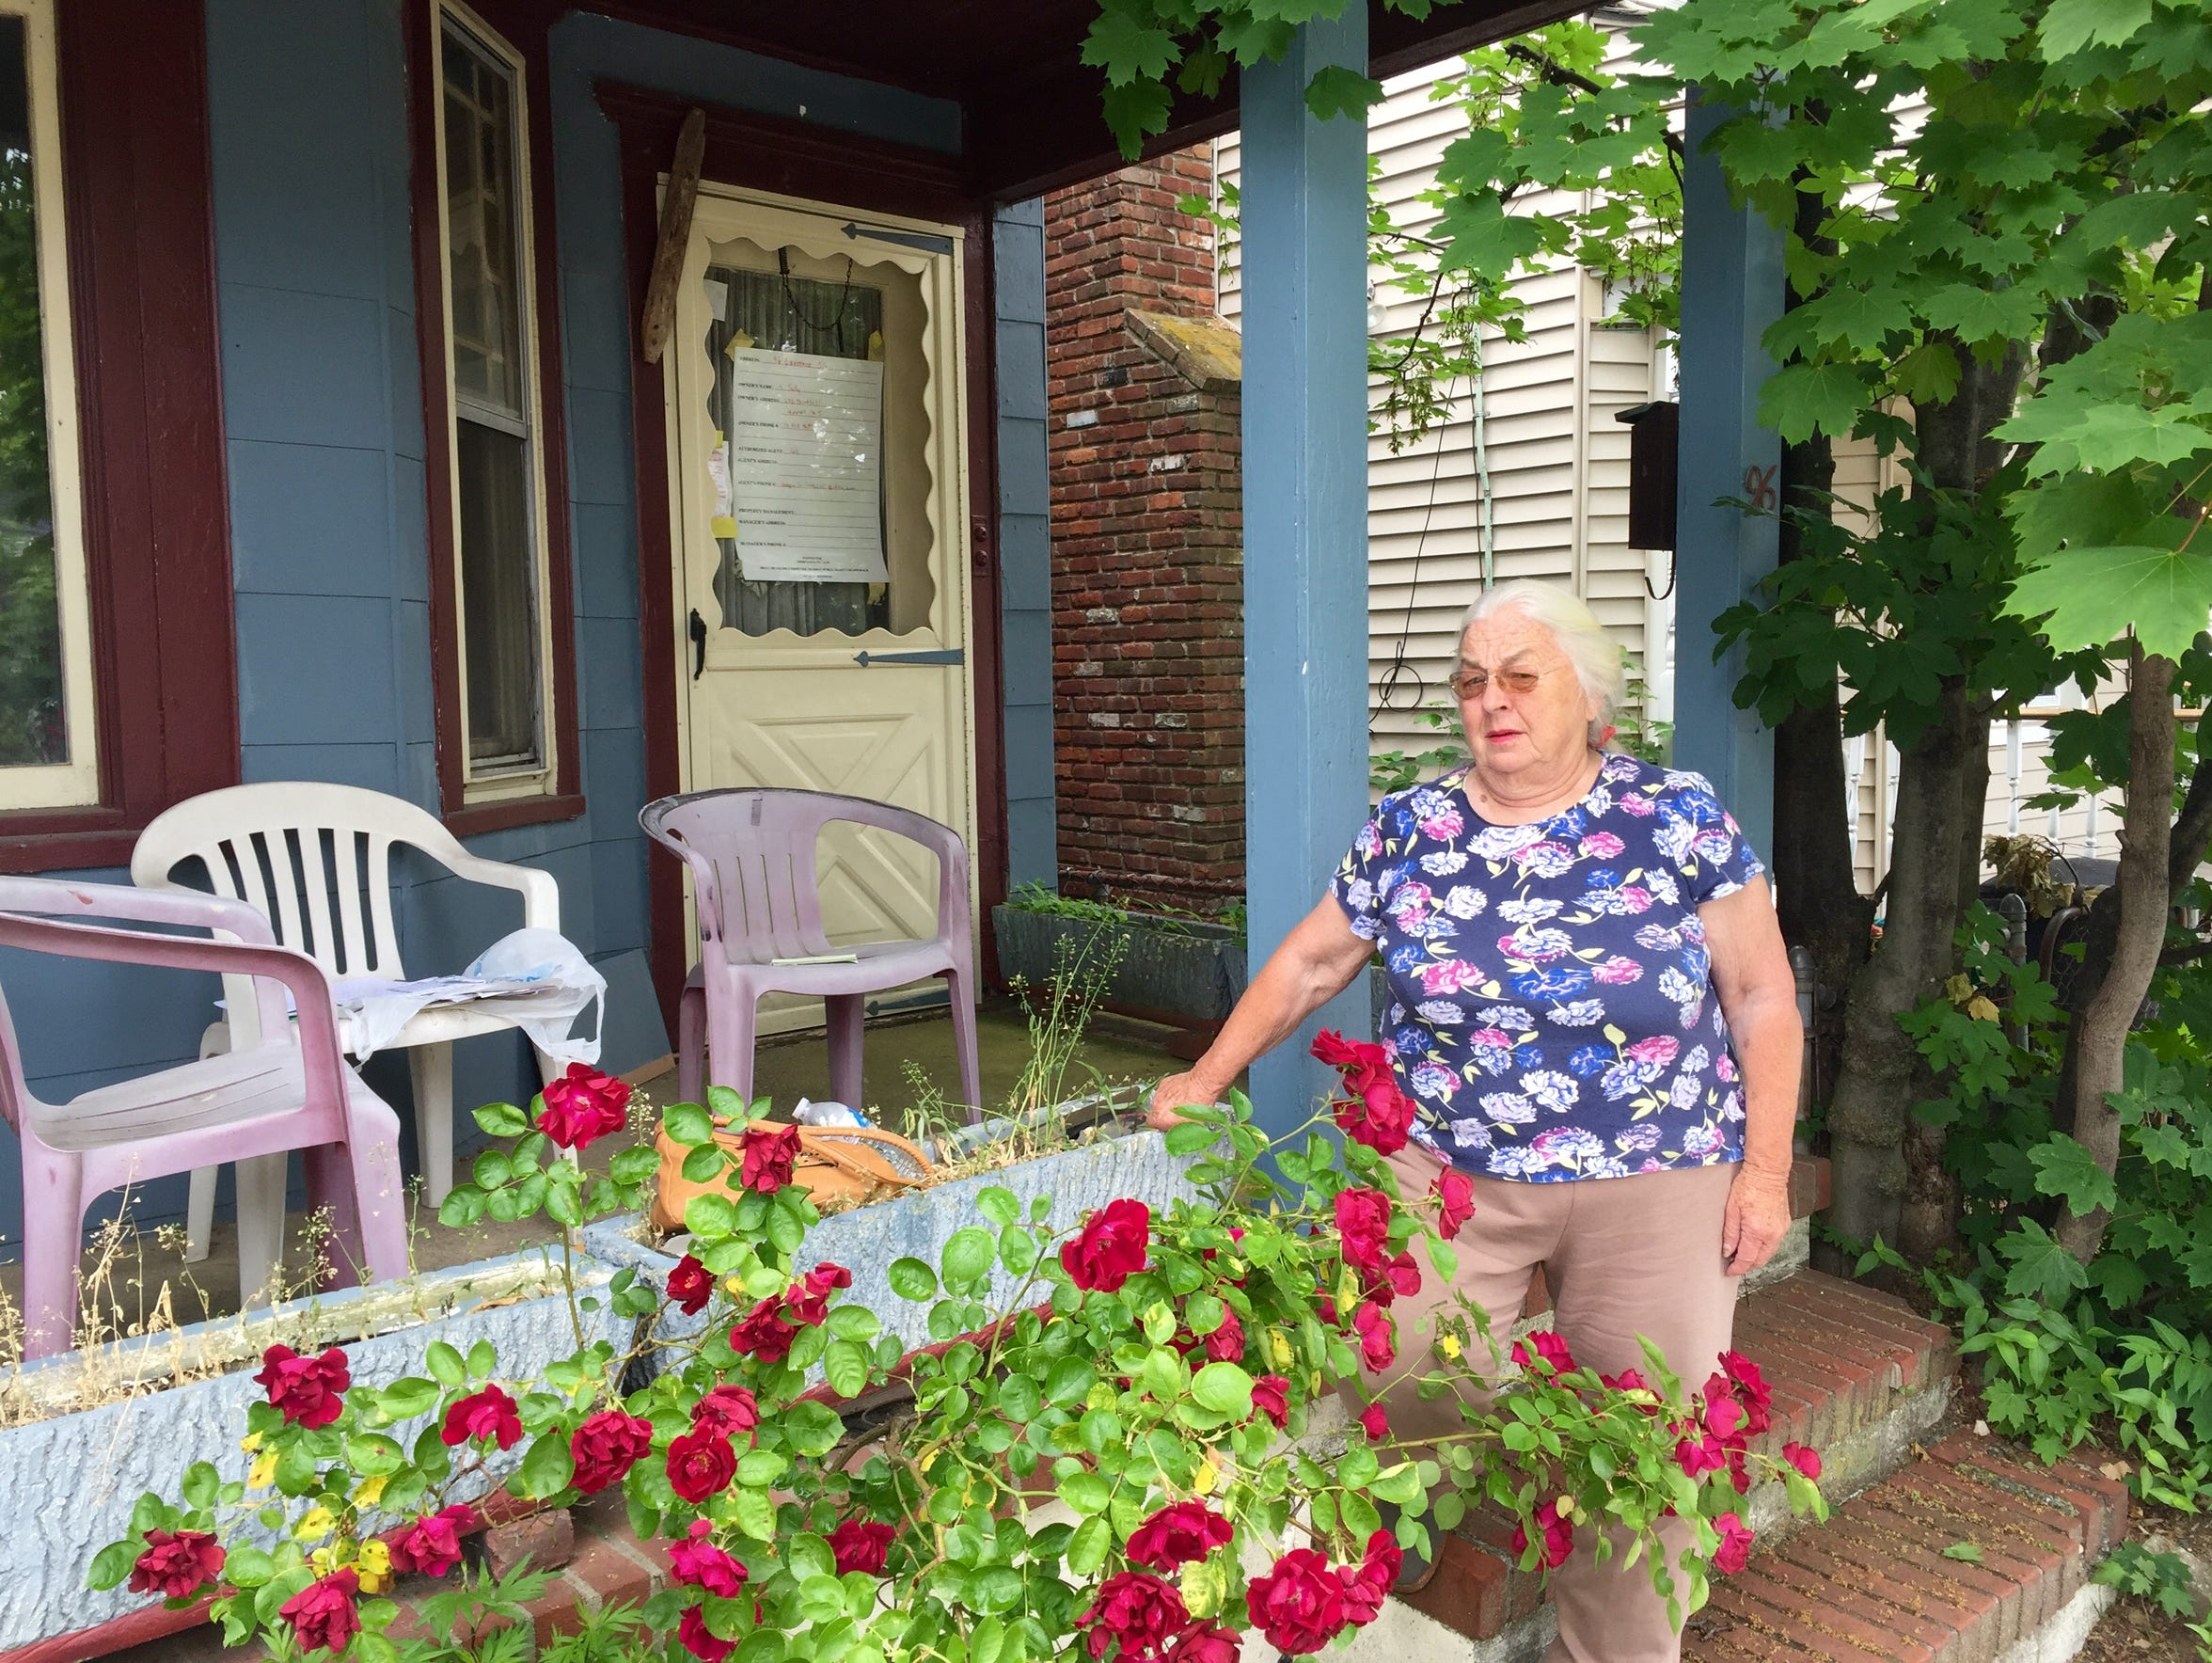 Sandra Solly fought Neptune Township, saying her house